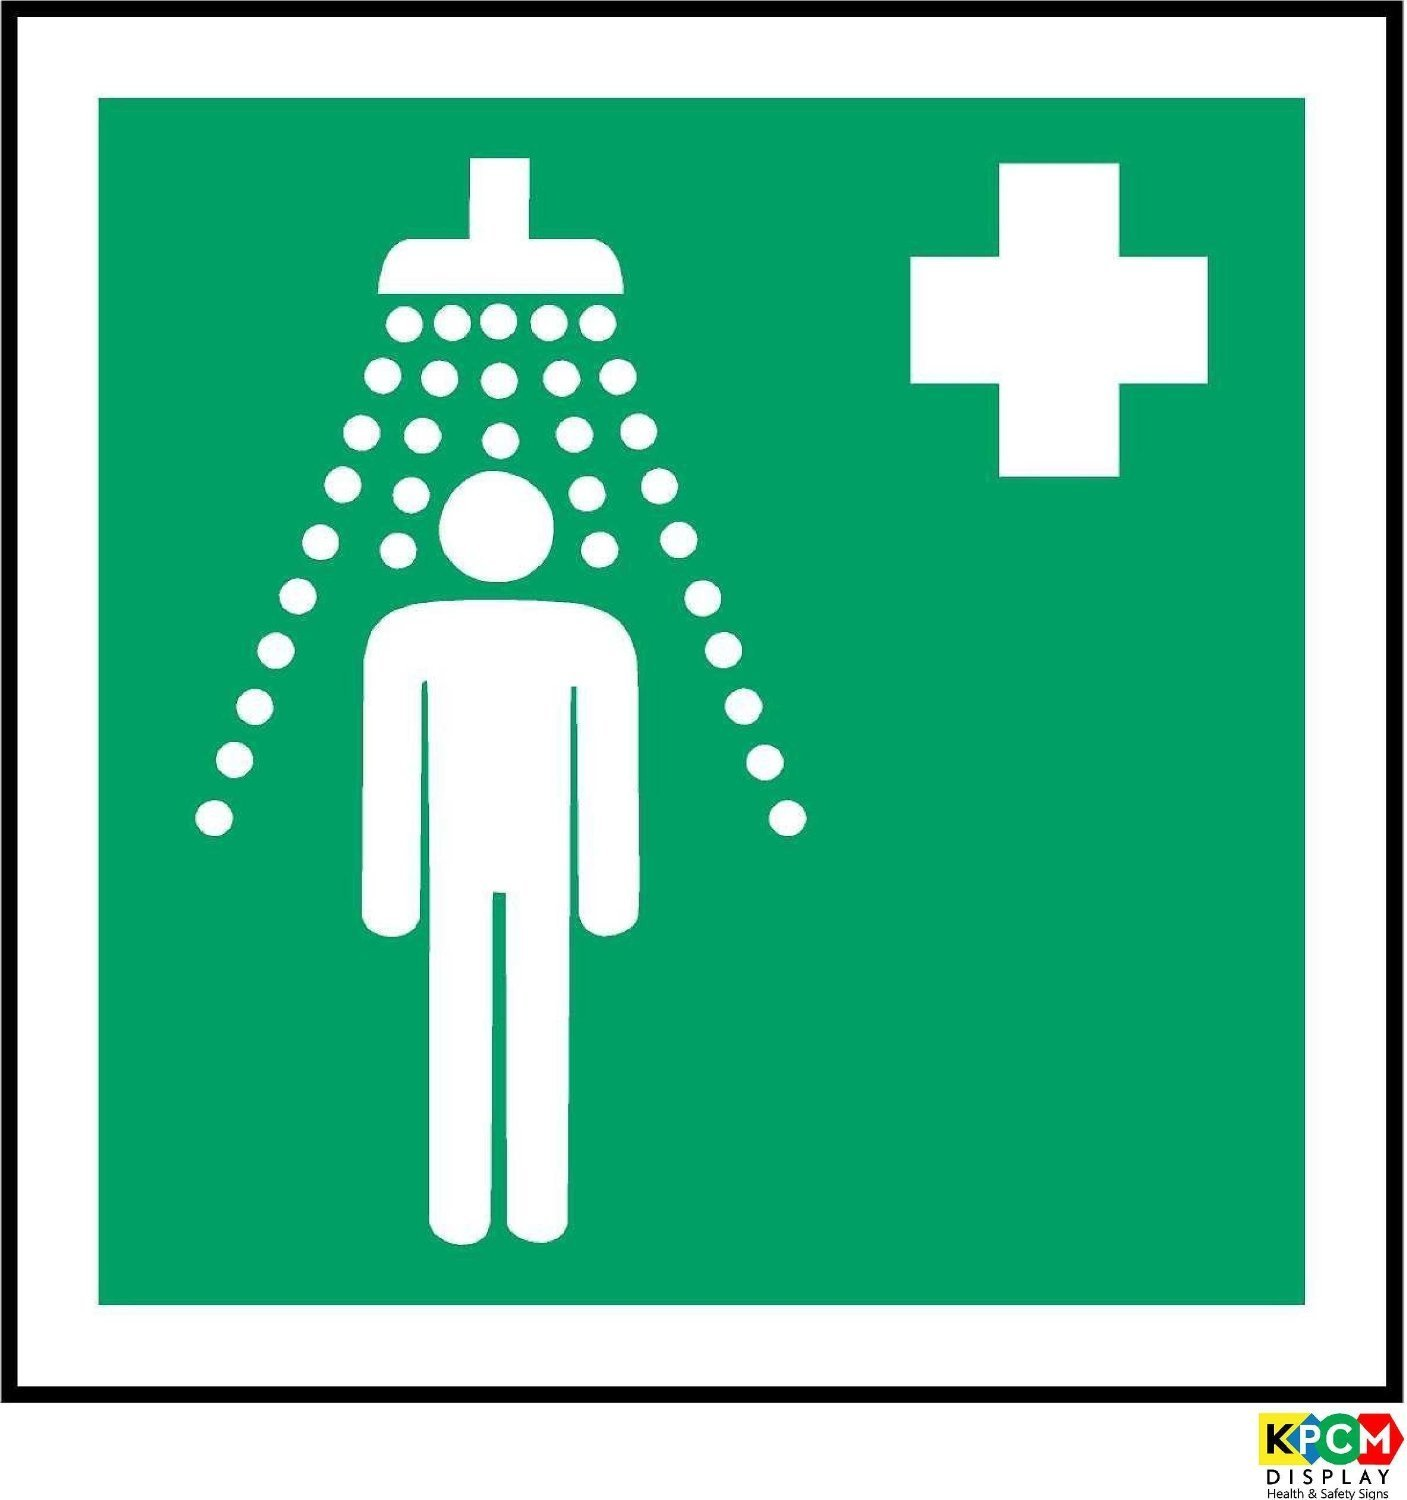 Iso safety sign international safety shower symbol self adhesive iso safety sign international safety shower symbol self adhesive sticker 150mm x 150mm amazon industrial scientific biocorpaavc Image collections